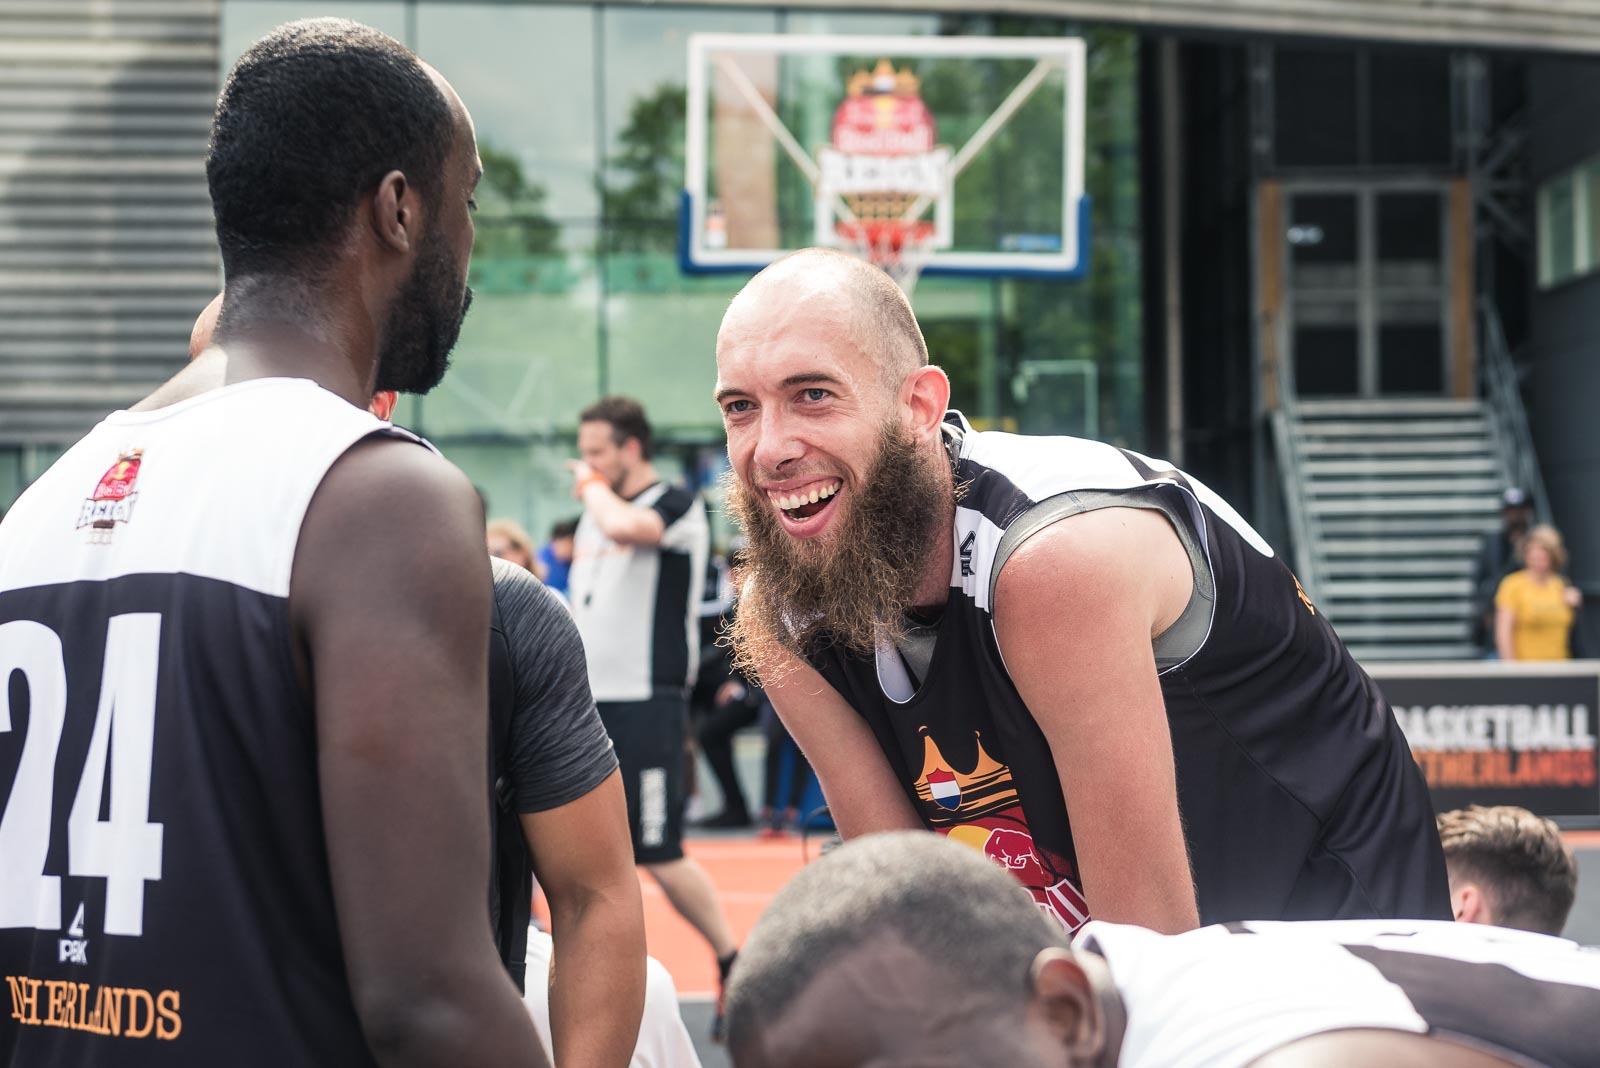 Basketball player laughing during Red Bull Reign in Rotterdam